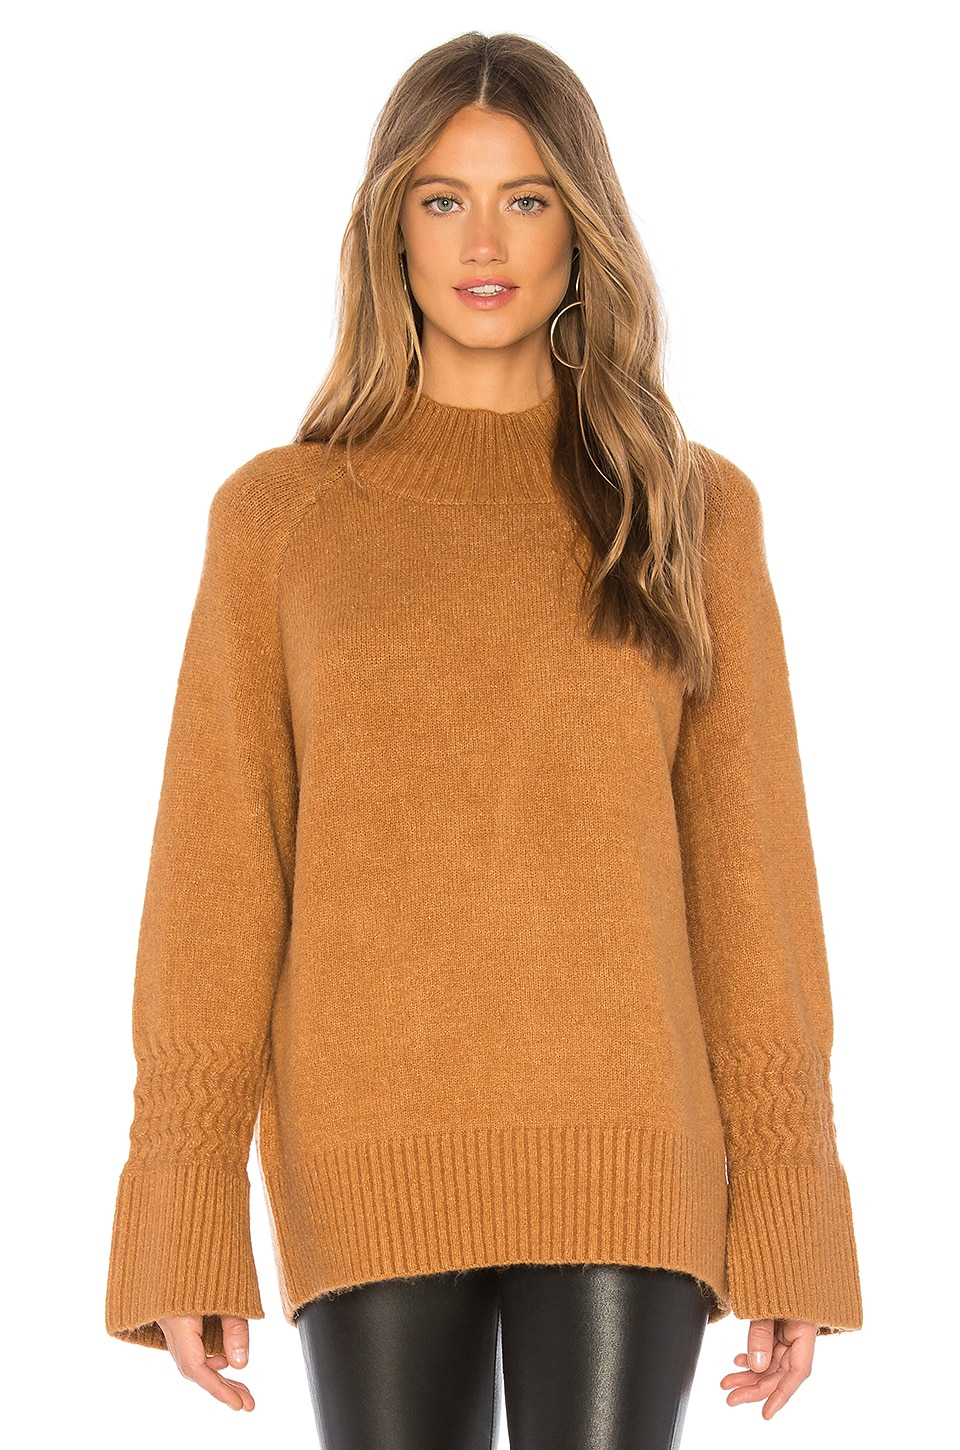 J.O.A. Mock Neck Sweater in Camel